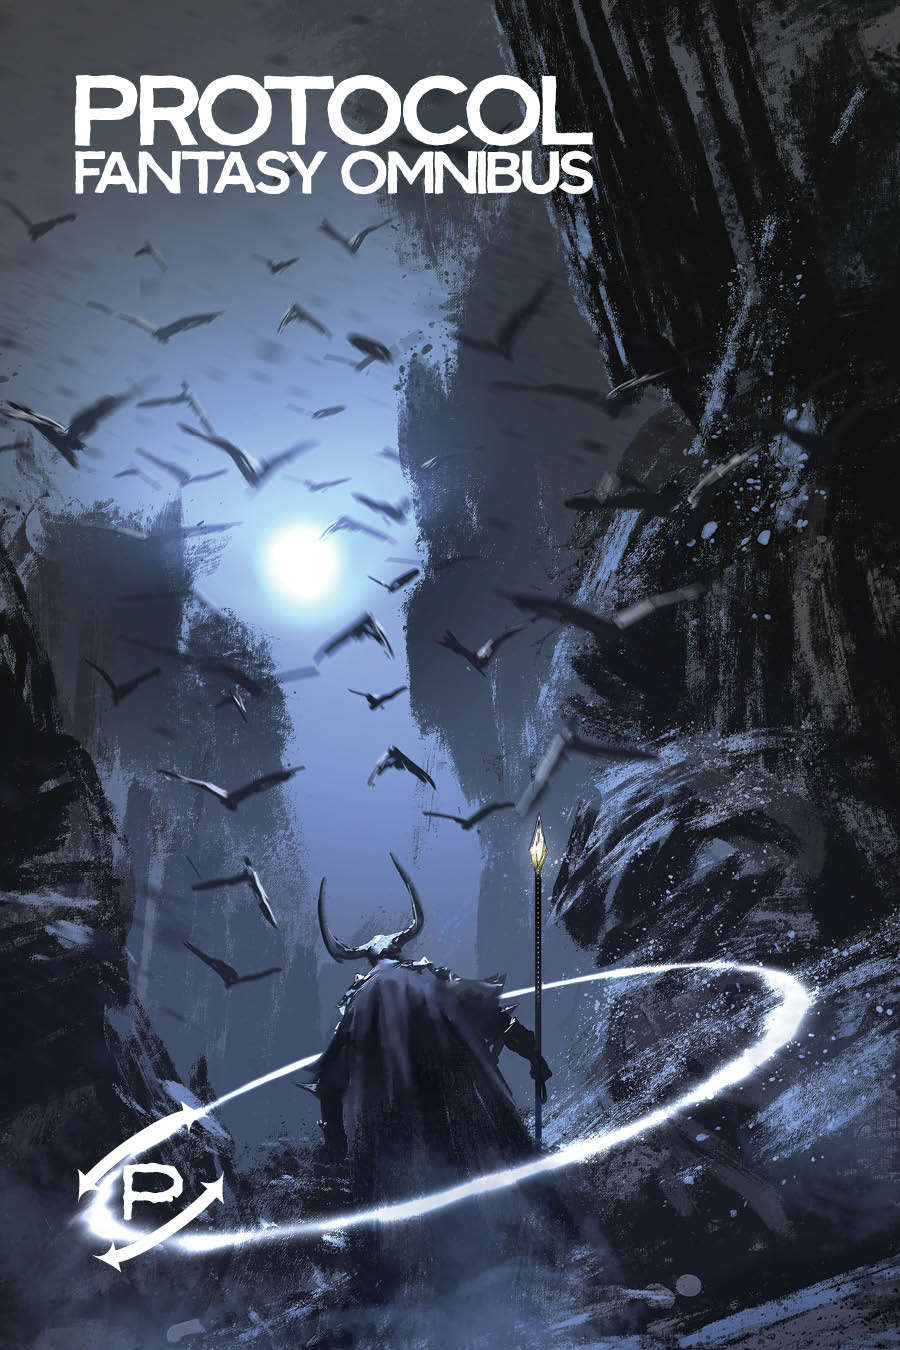 Protocol Fantasy Omnibus, A Guide to GMless Gaming